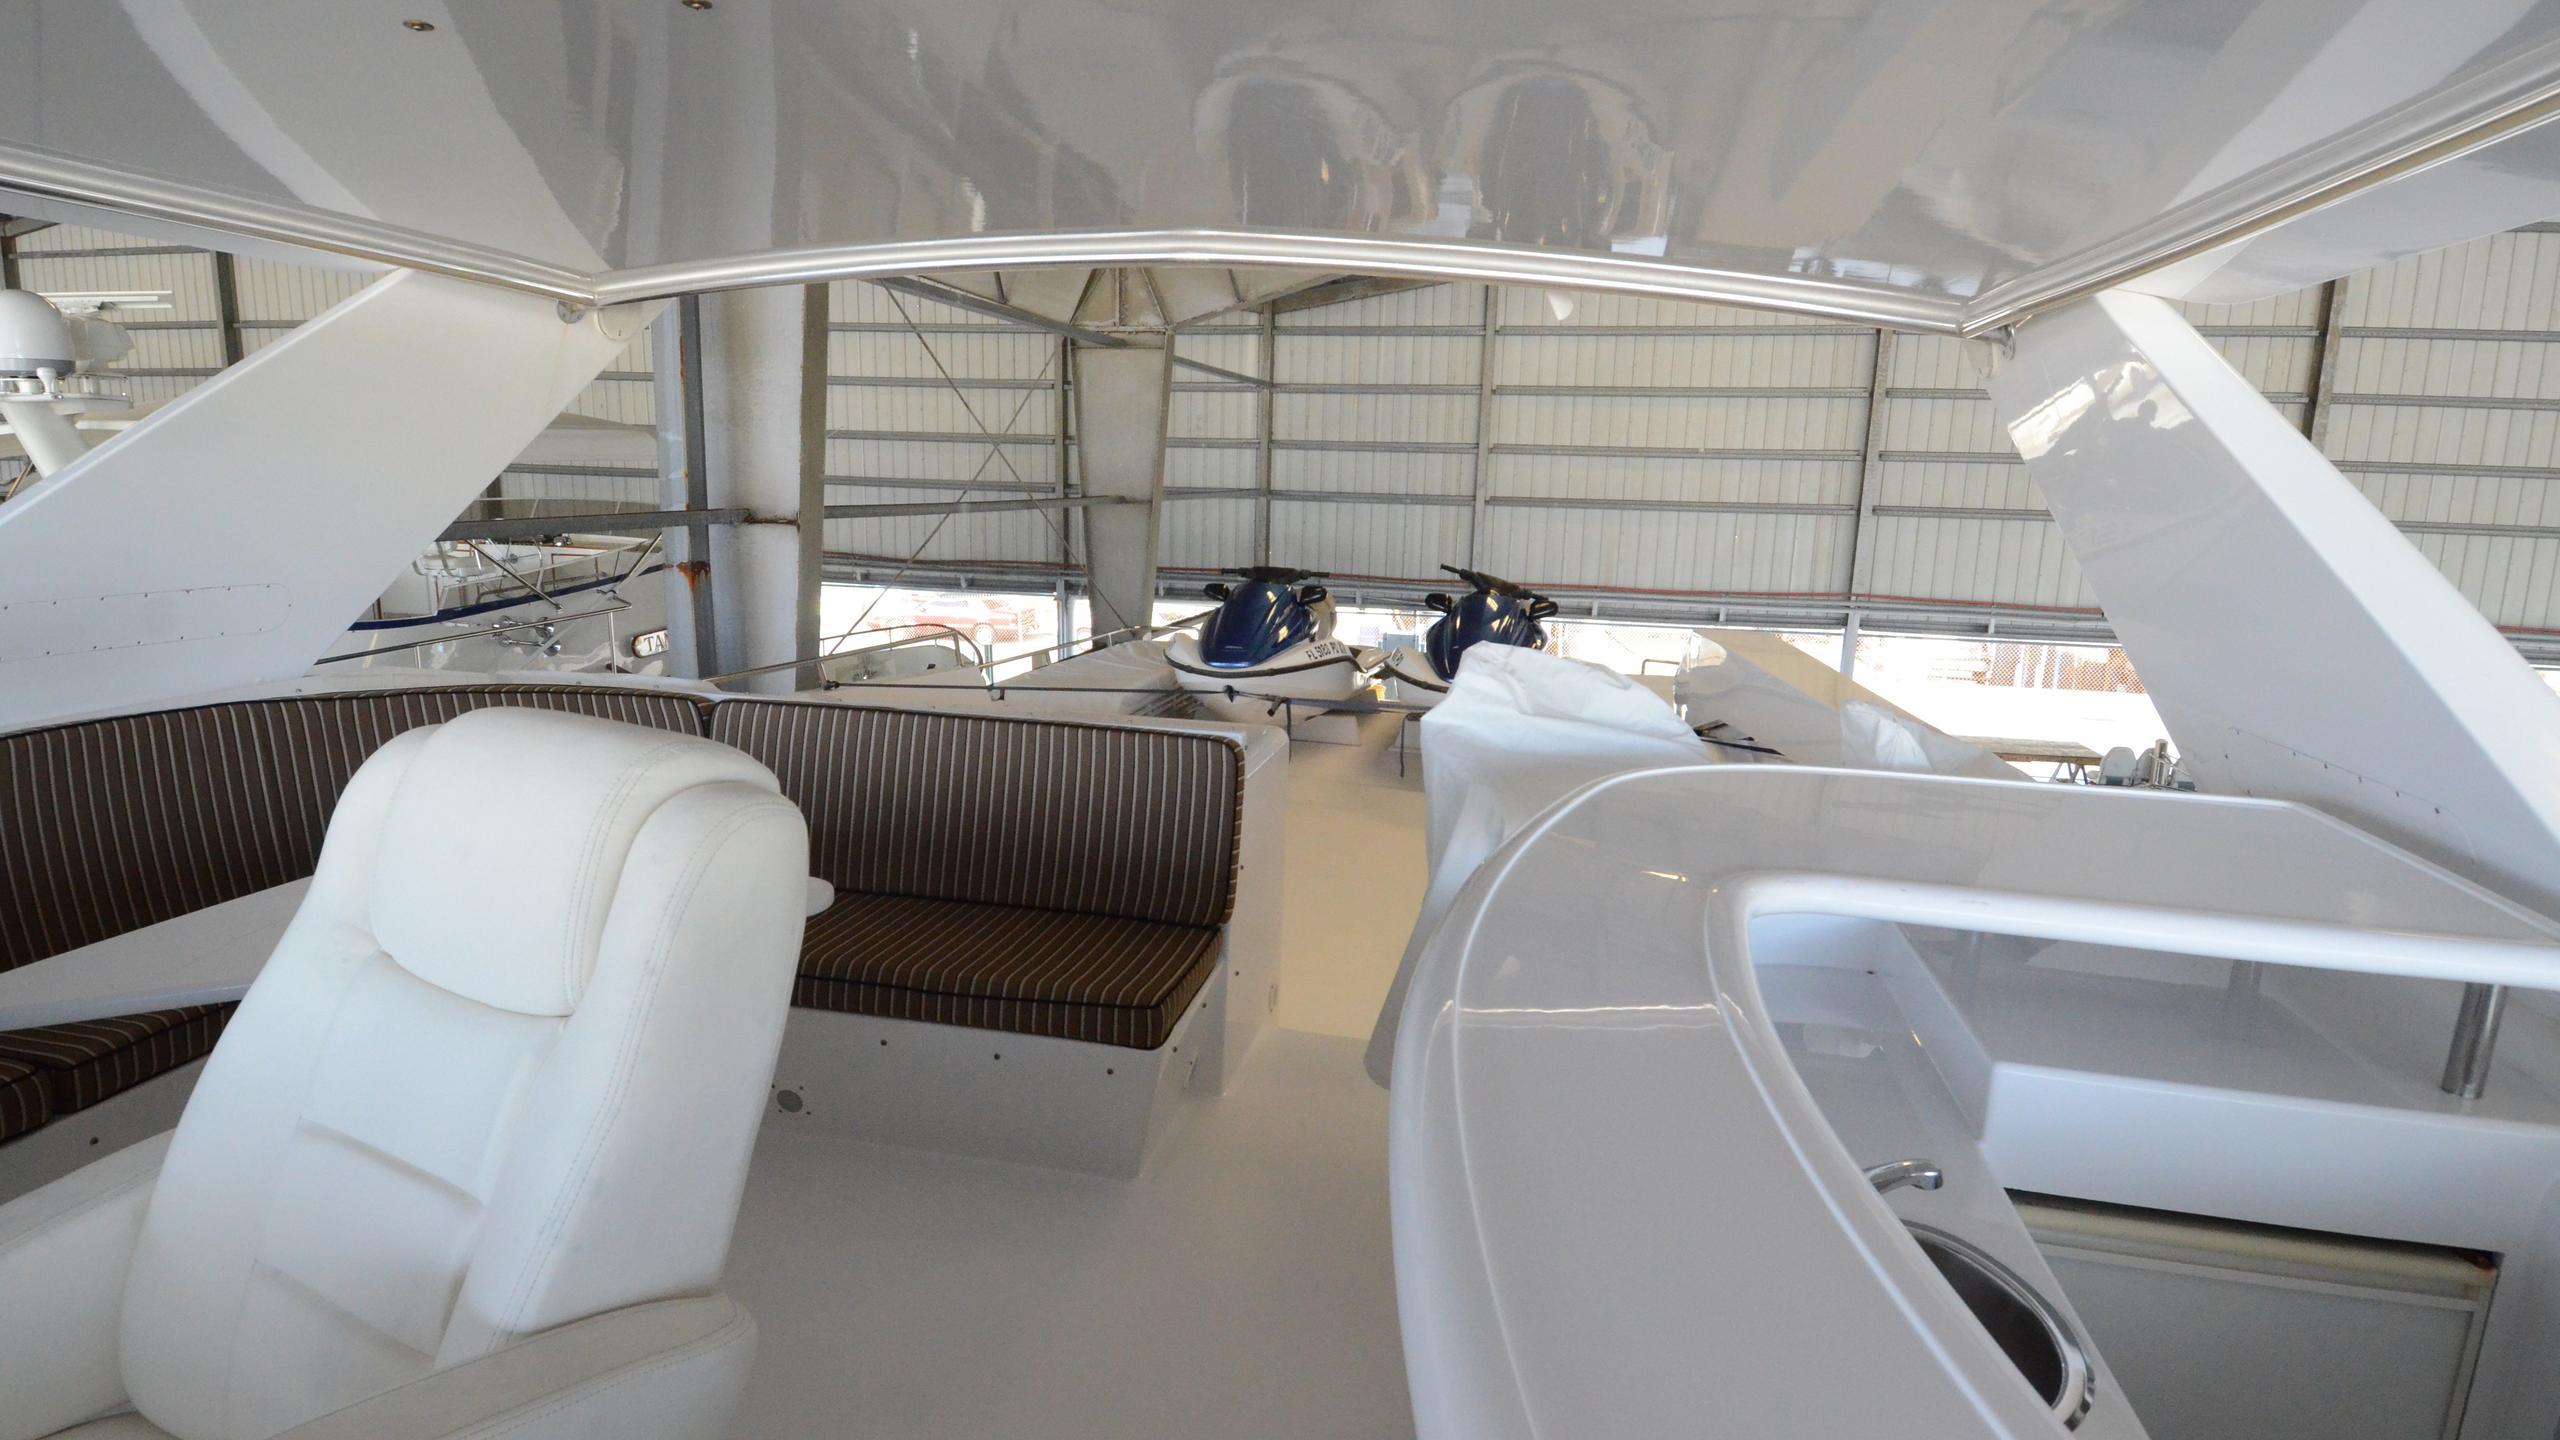 cloud-9-yacht-fly-deck